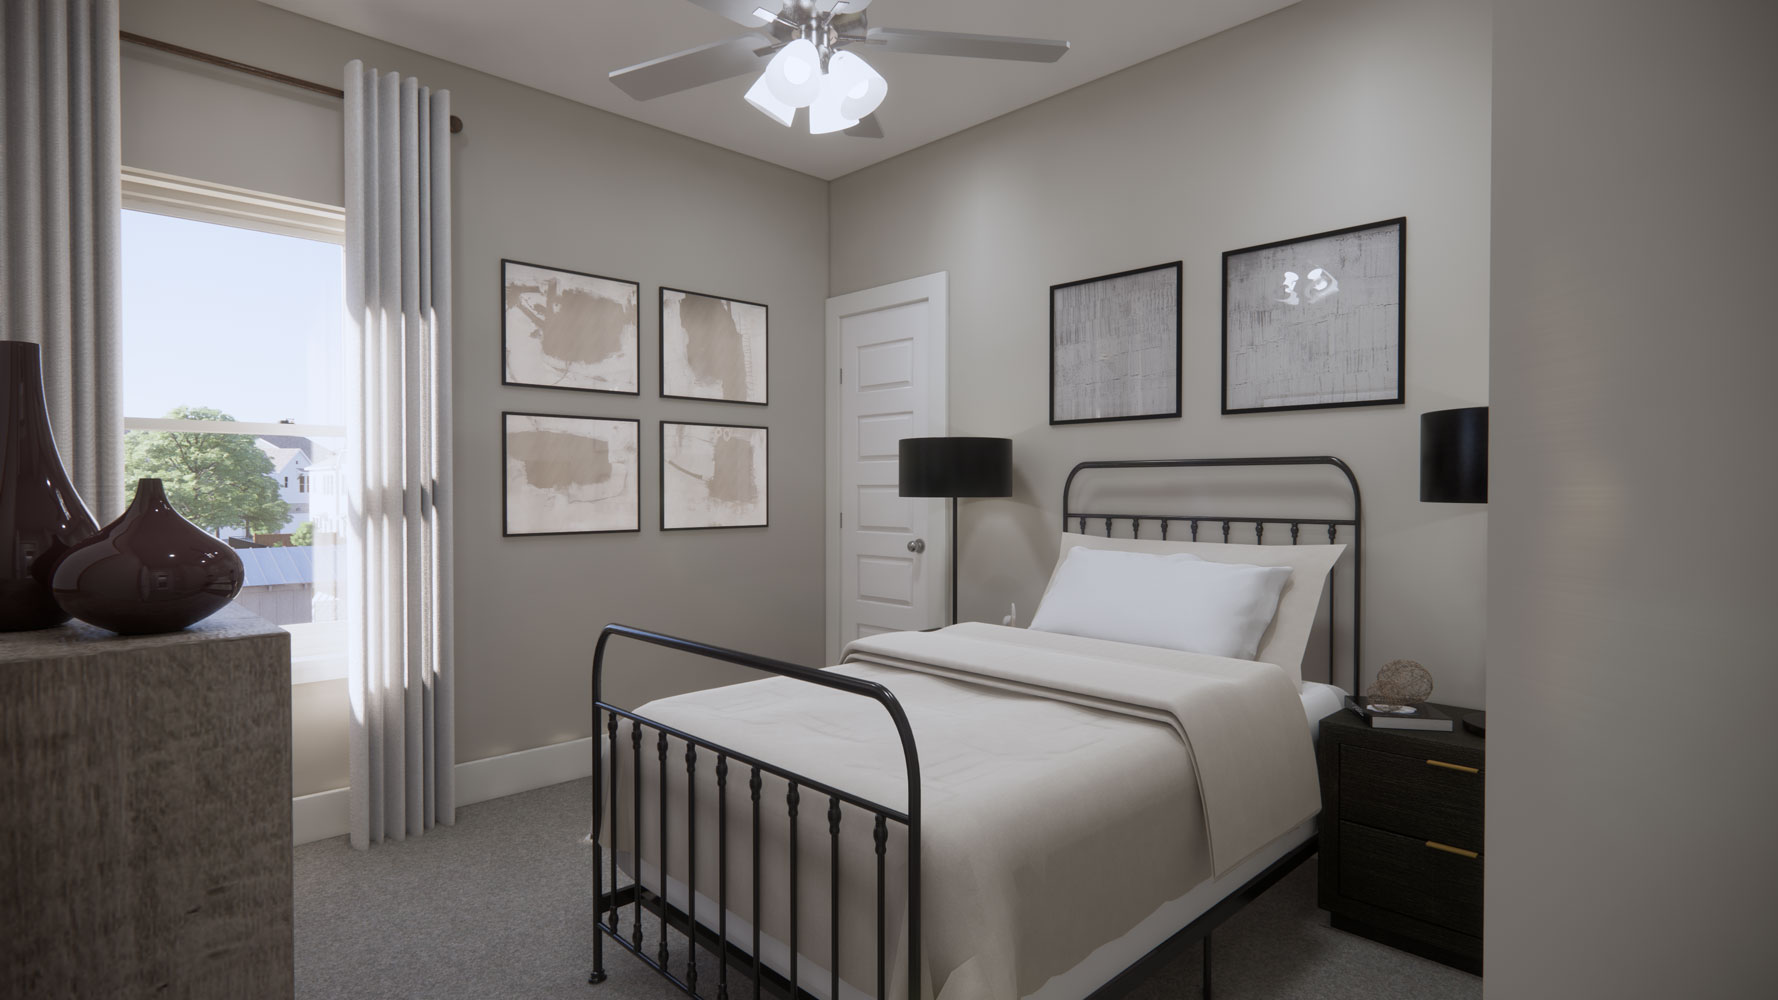 Light-Filled Rooms at Echelon at Reverchon Bluffs in Dallas, Texas